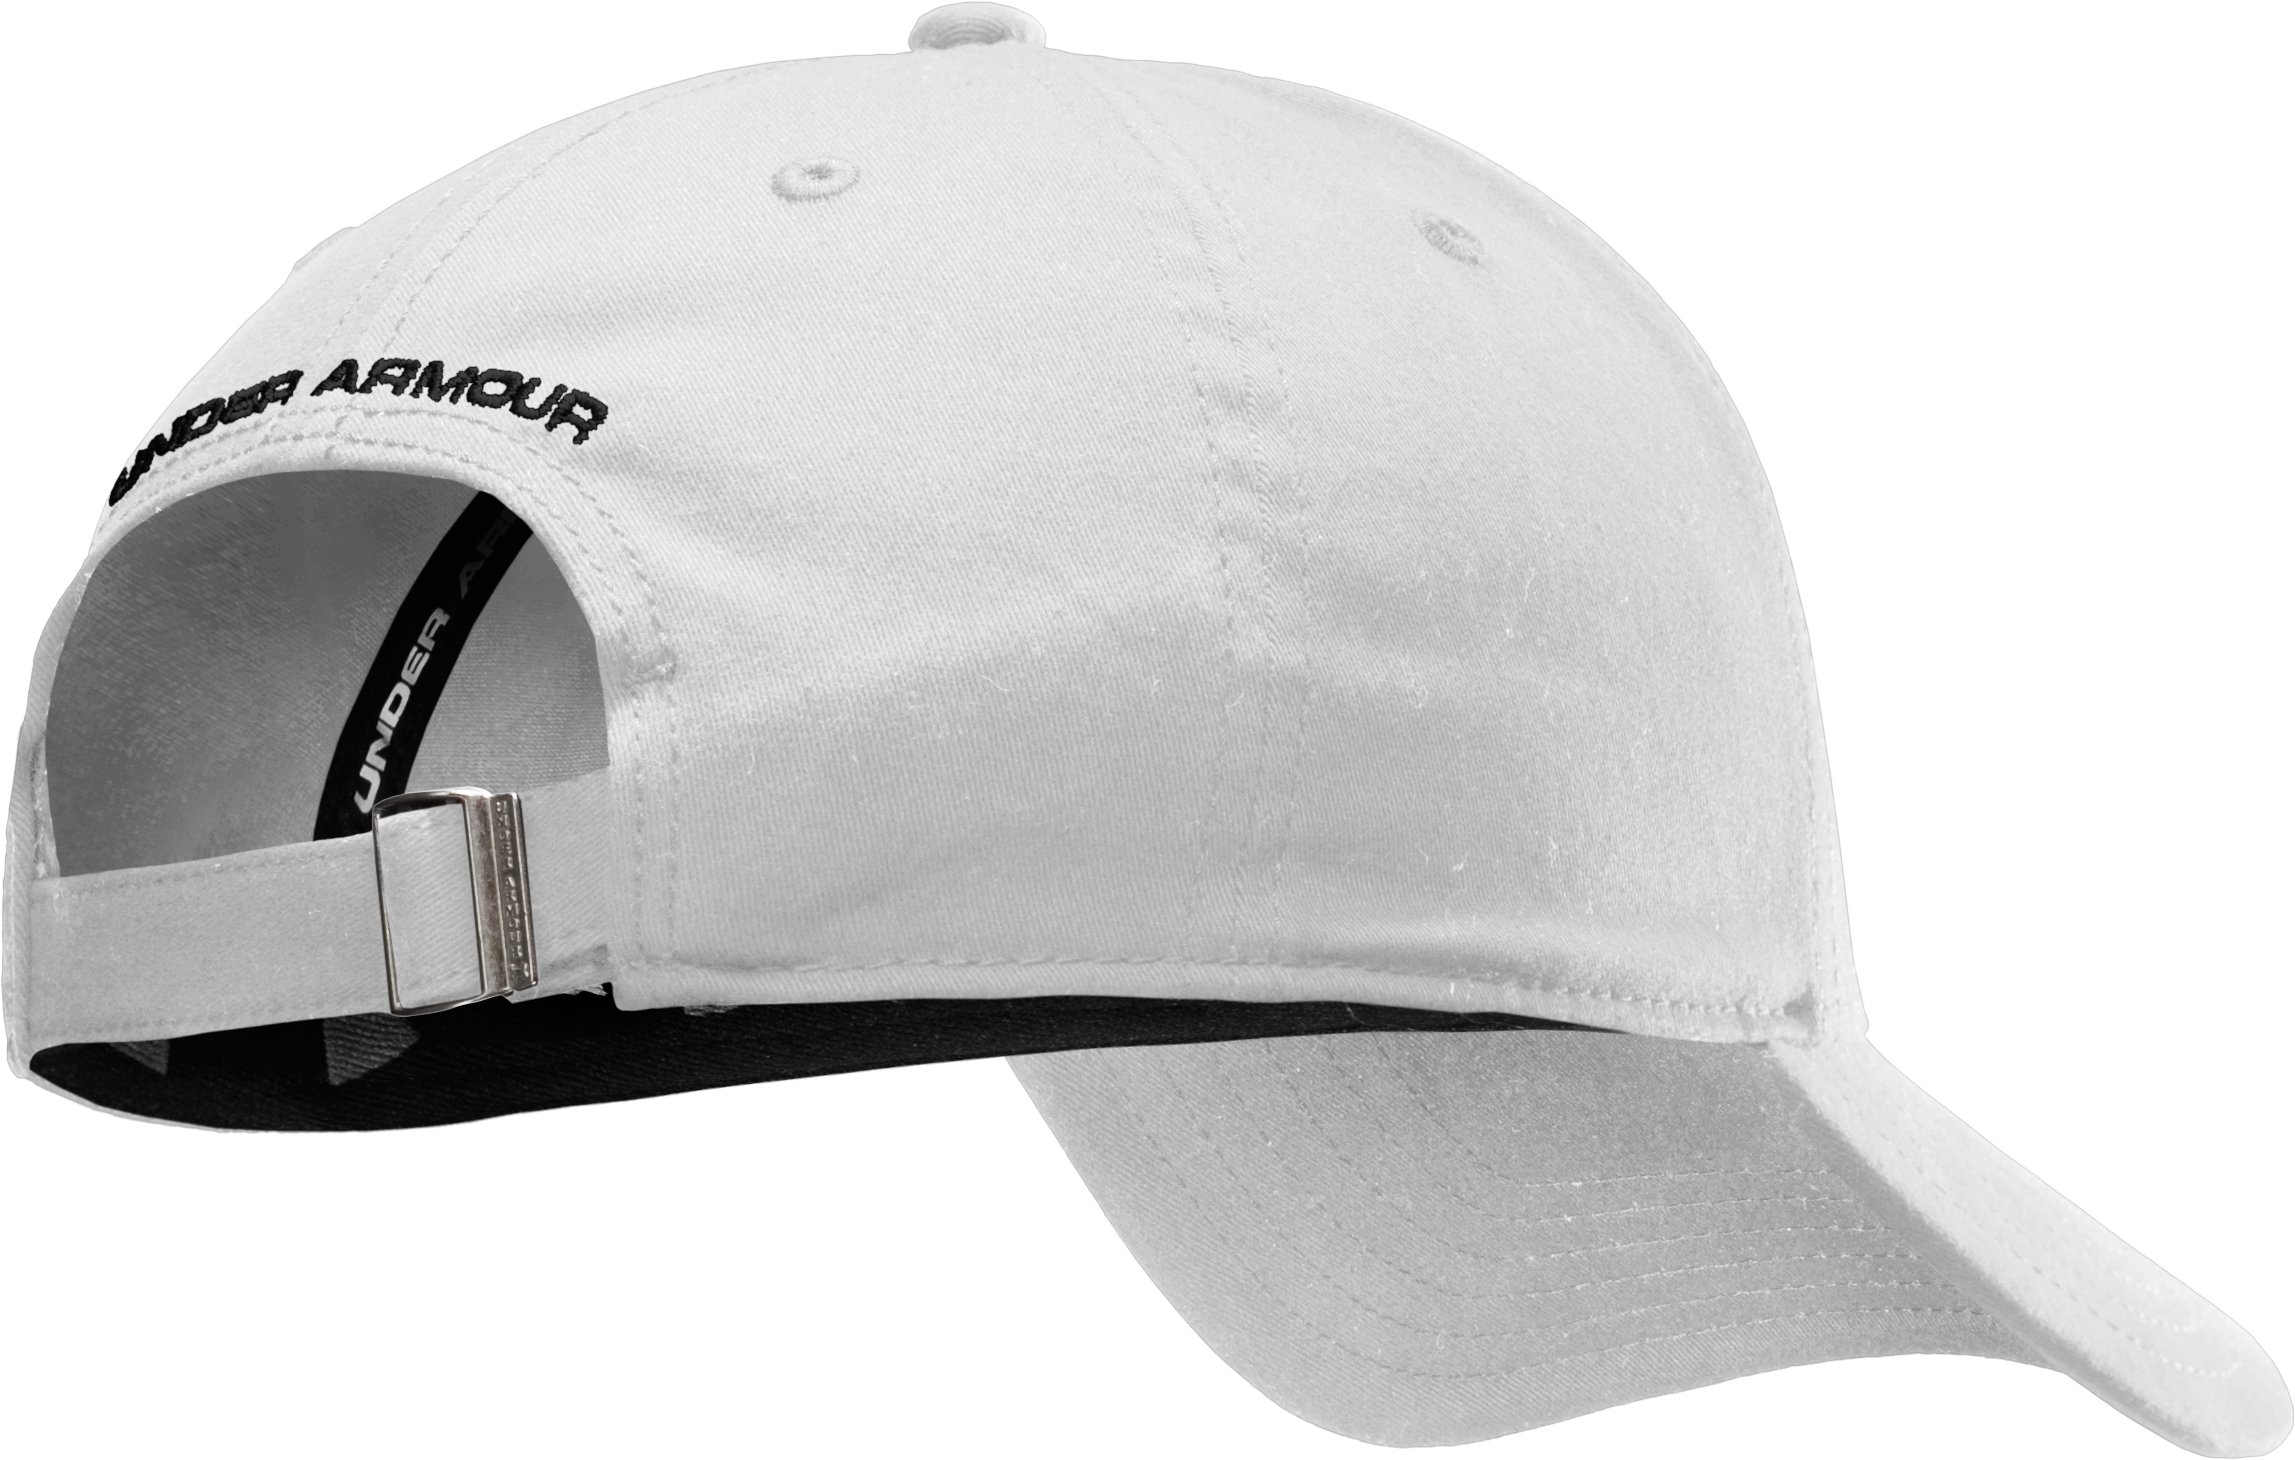 Men's Charged Cotton® Adjustable Cap, White